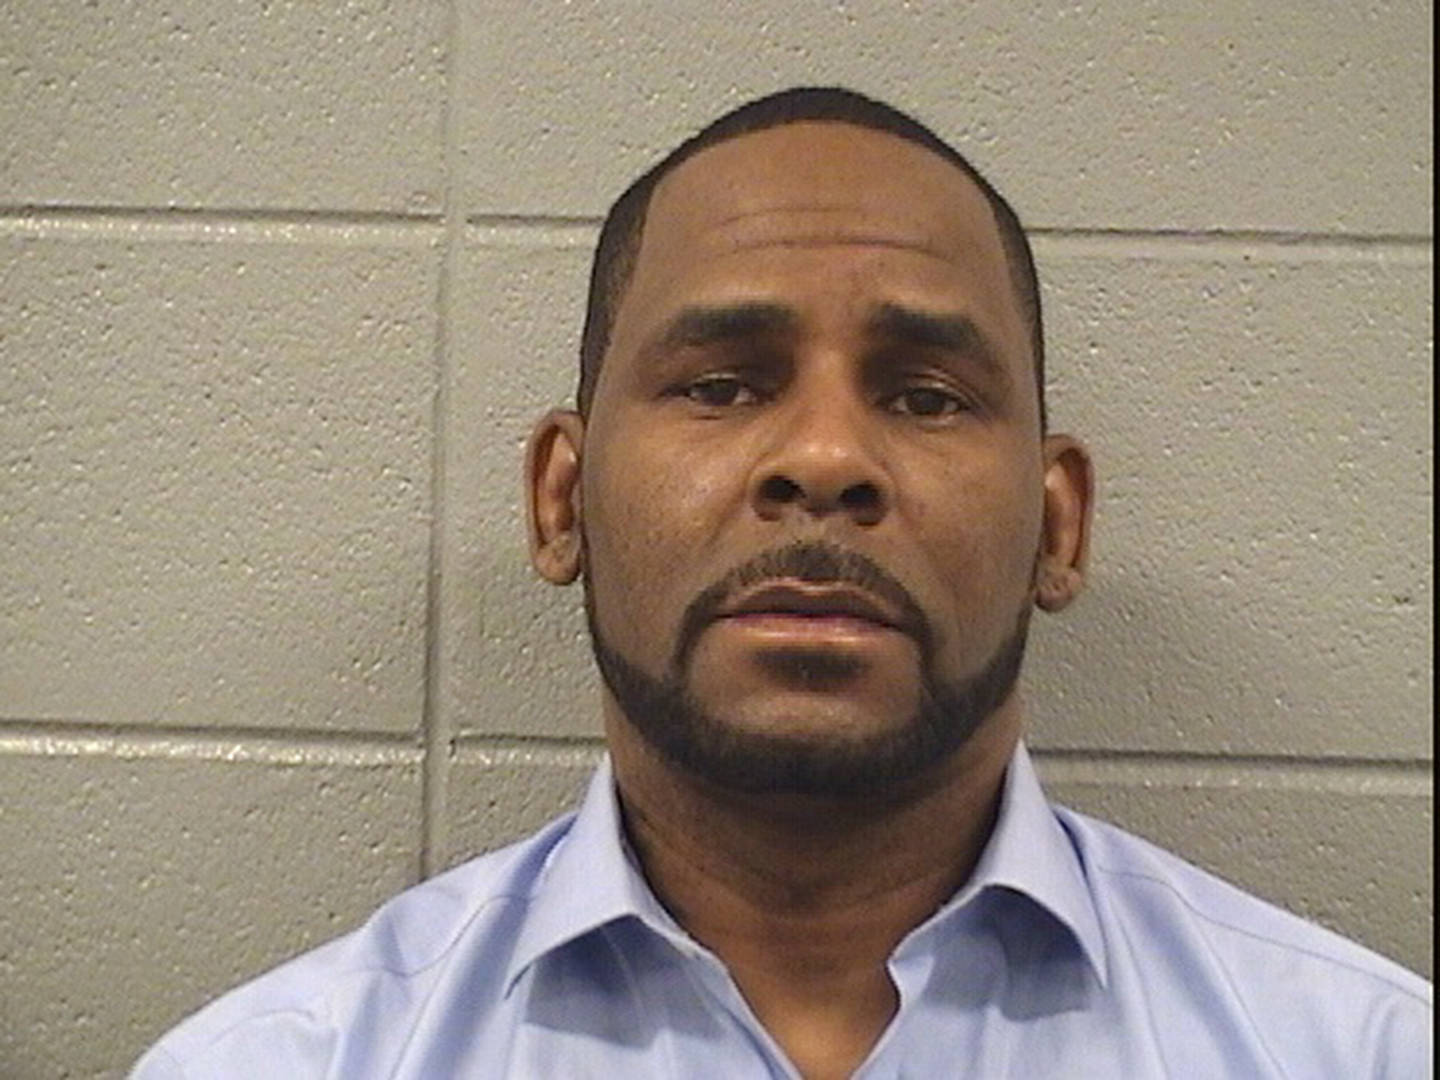 R. Kelly pleads not guilty to latest sexual abuse charges